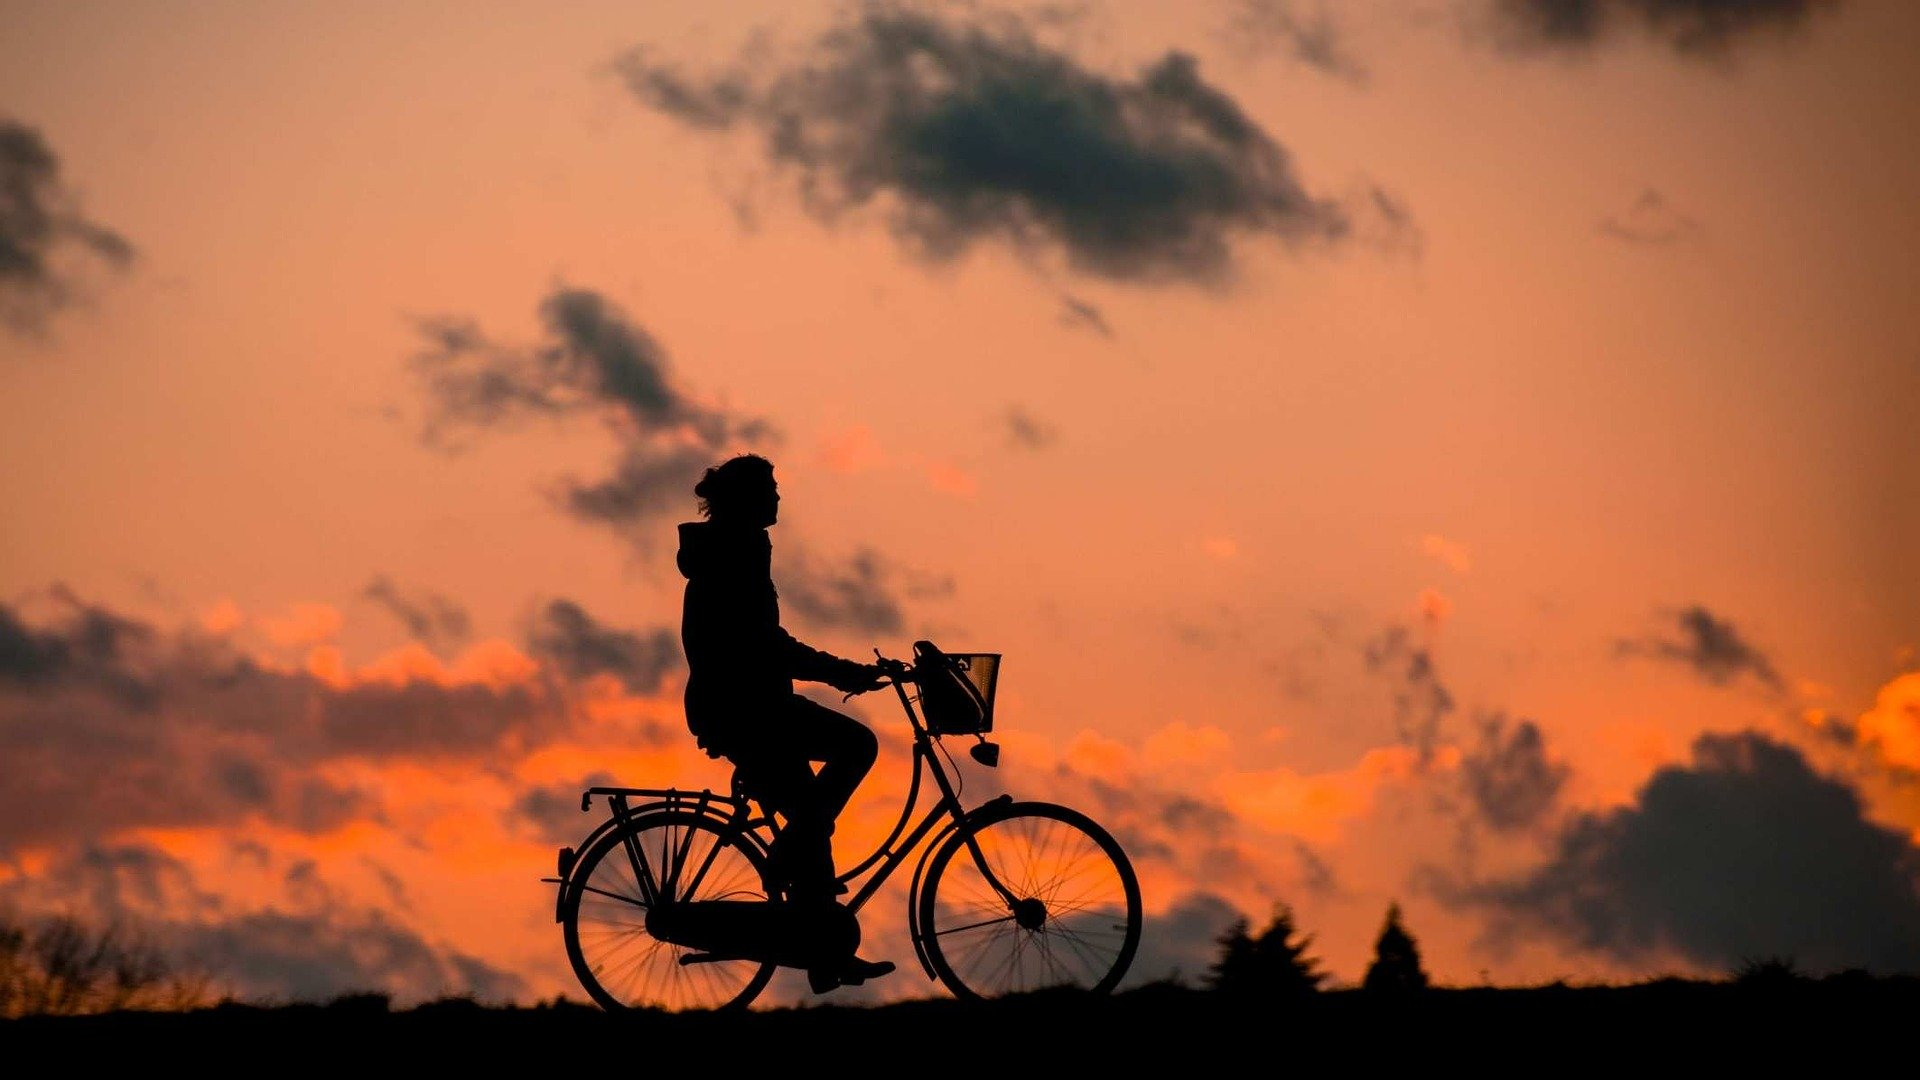 Cycling silhouette image